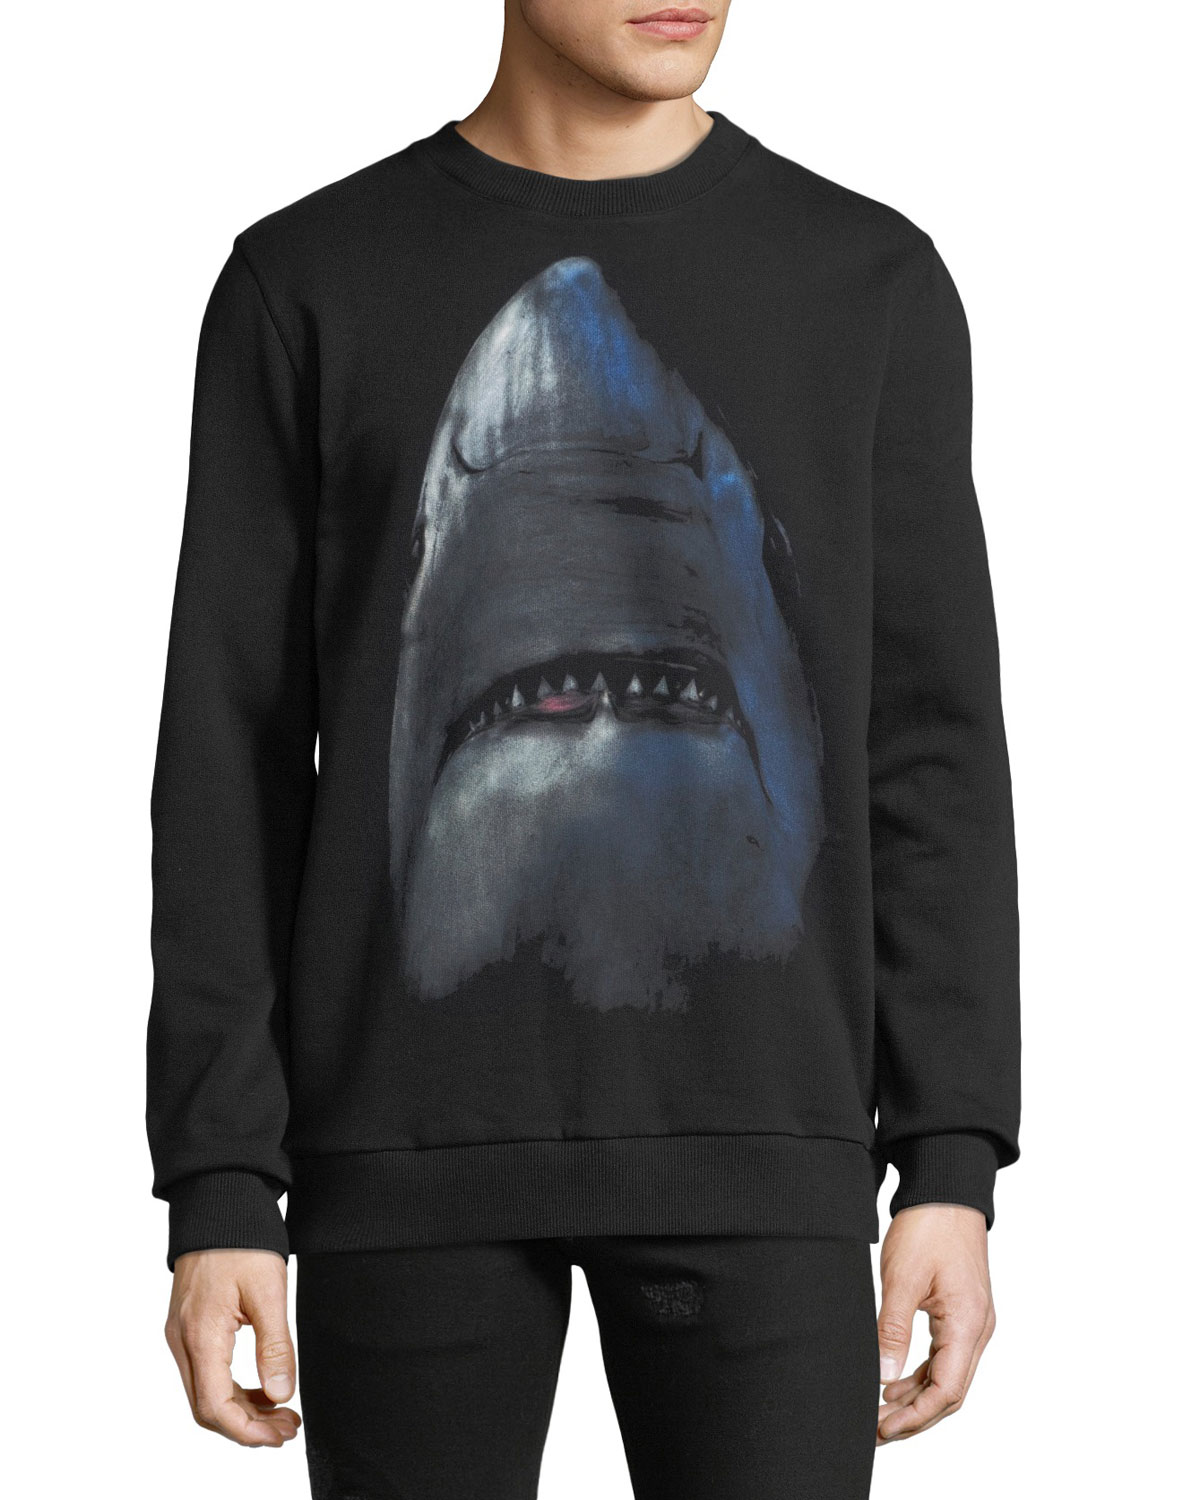 Men's Cuban-Fit Shark Graphic Sweatshirt